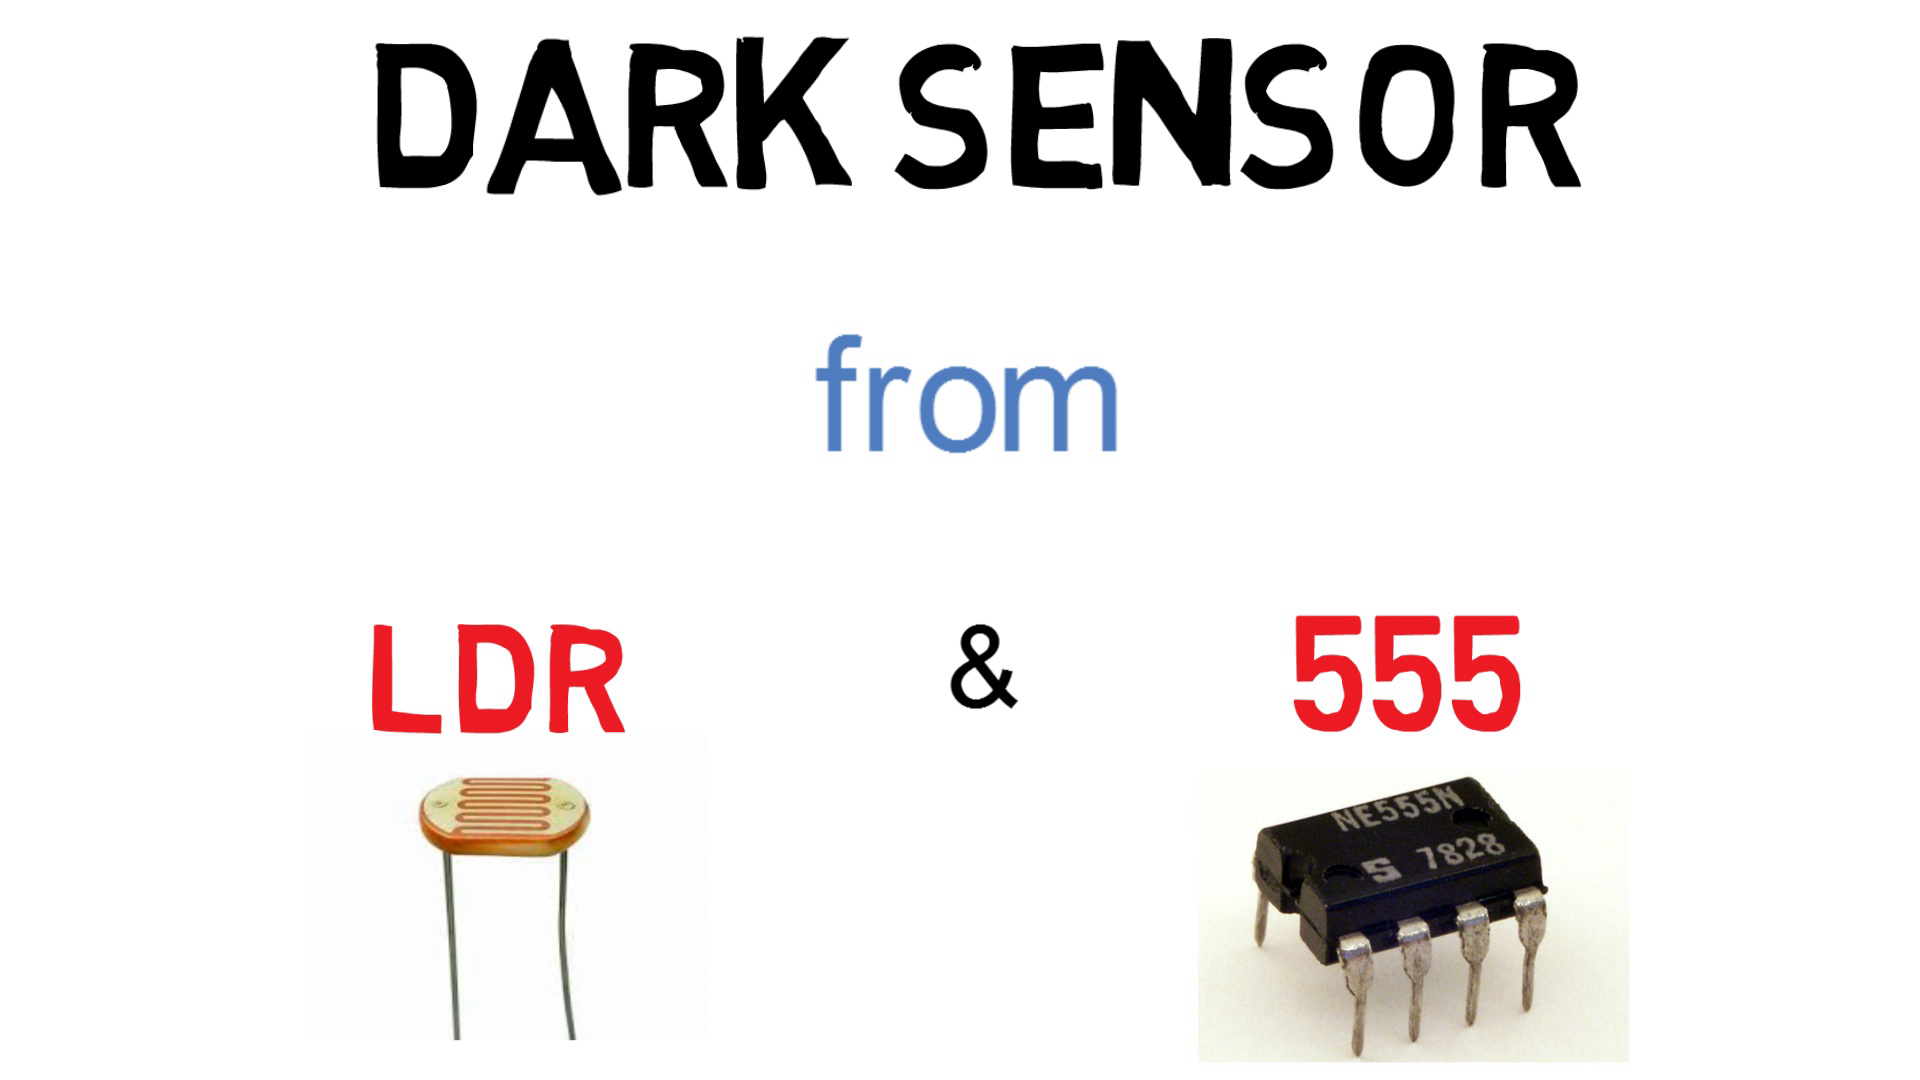 How To Make A Dark Sensor Using Ldr And 555 Timer Voice Warning Circuit Diagram Sensorcircuit